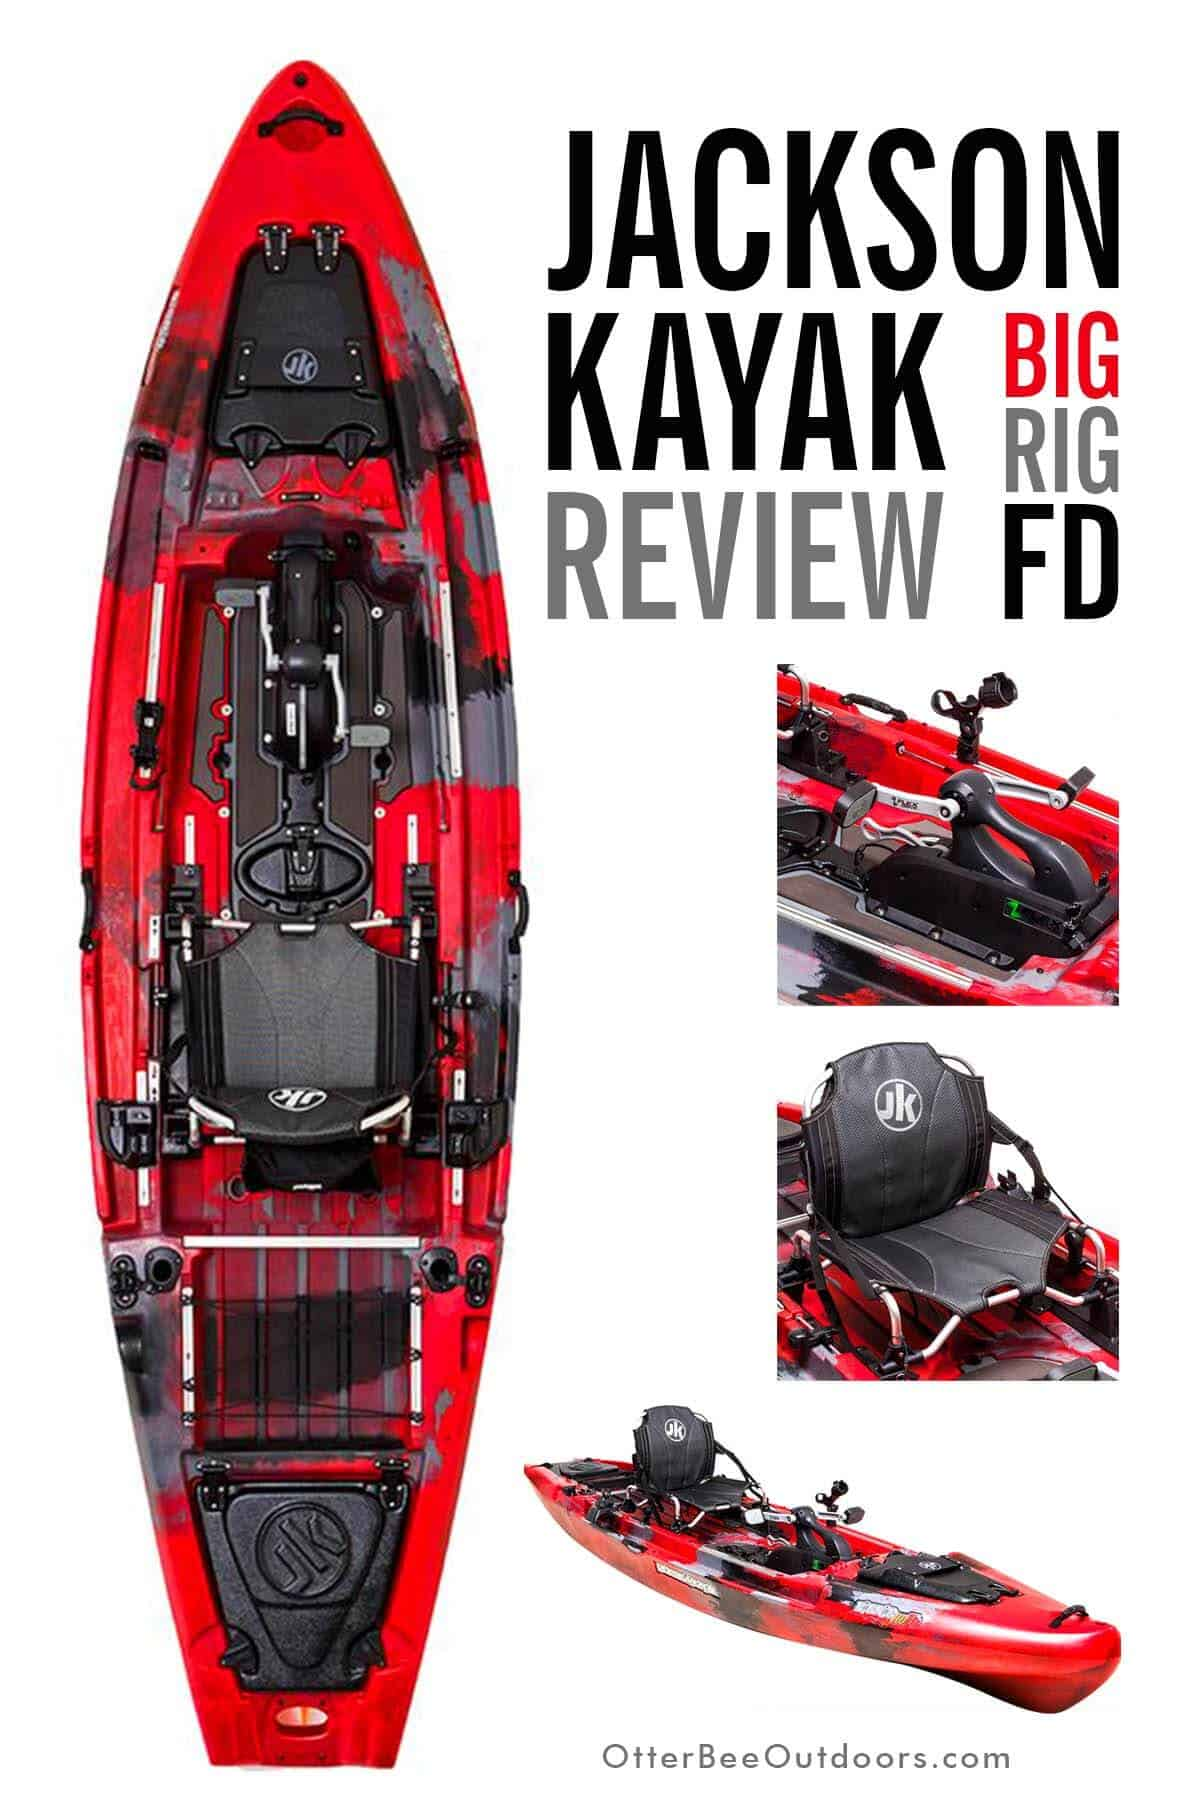 Jackson Kayak Big Rig FD Review. The Jackson Kayak Big Rig FD with its Flex Drive 3D Pedal Drive is one of Jackson's most popular boats. Power, propulsion, steering, maneuverability, tracking, stability, comfort, storage, rod holders, and gear management are all thoughtfully designed to meet the needs of many fishing styles.